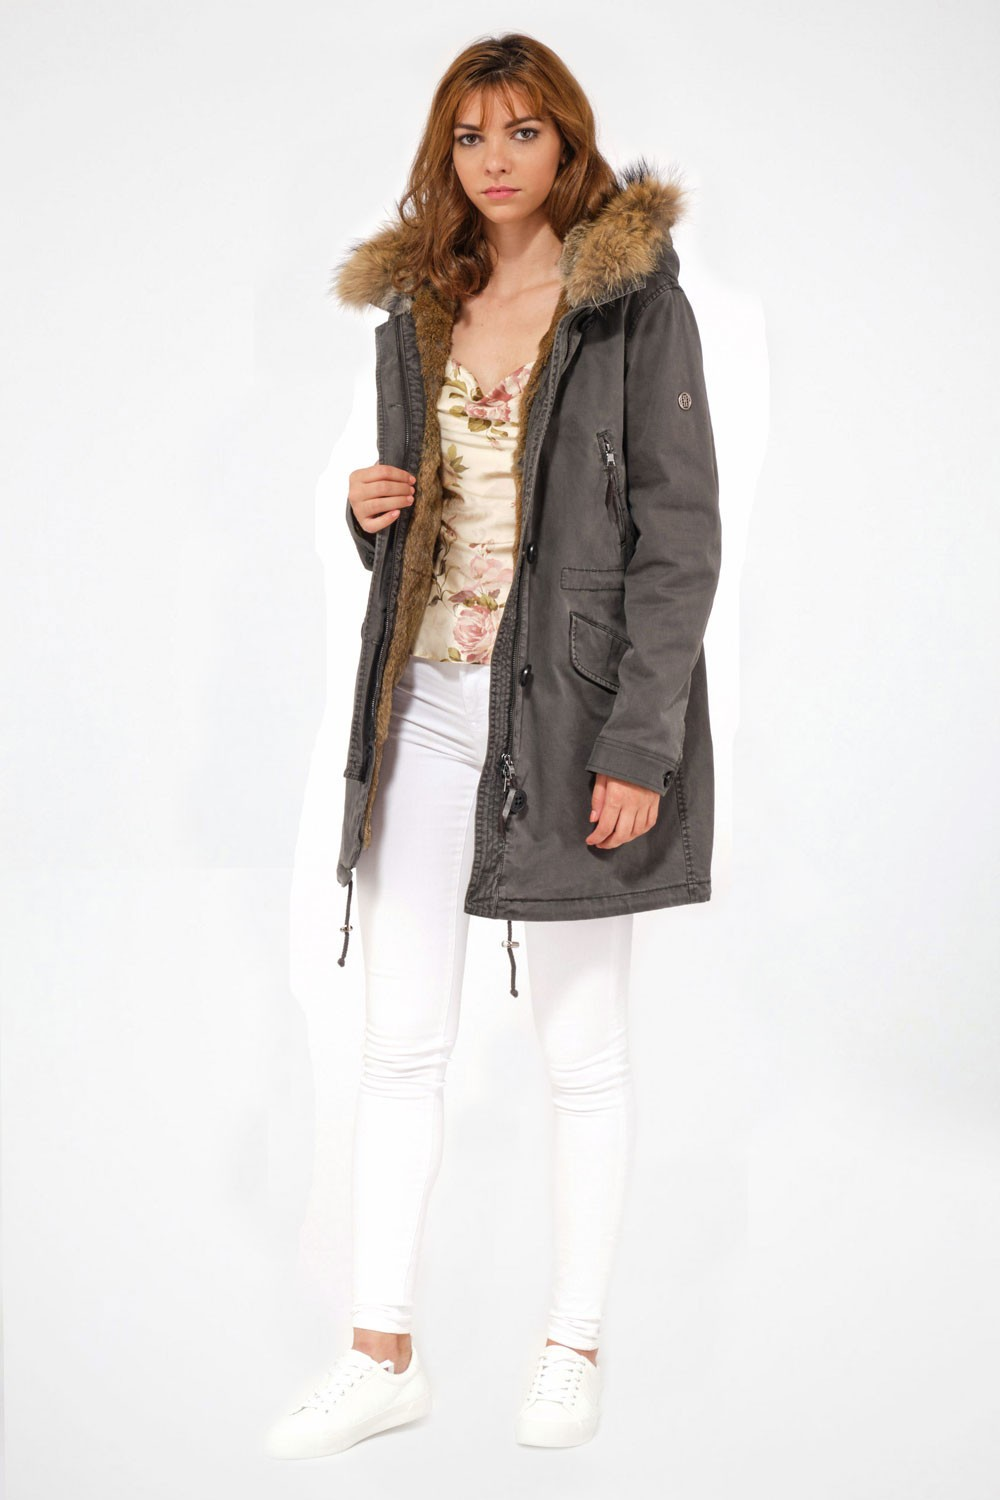 Doudoune et Parka femme Blonde N°8 ASPEN 515 Night Green/7100